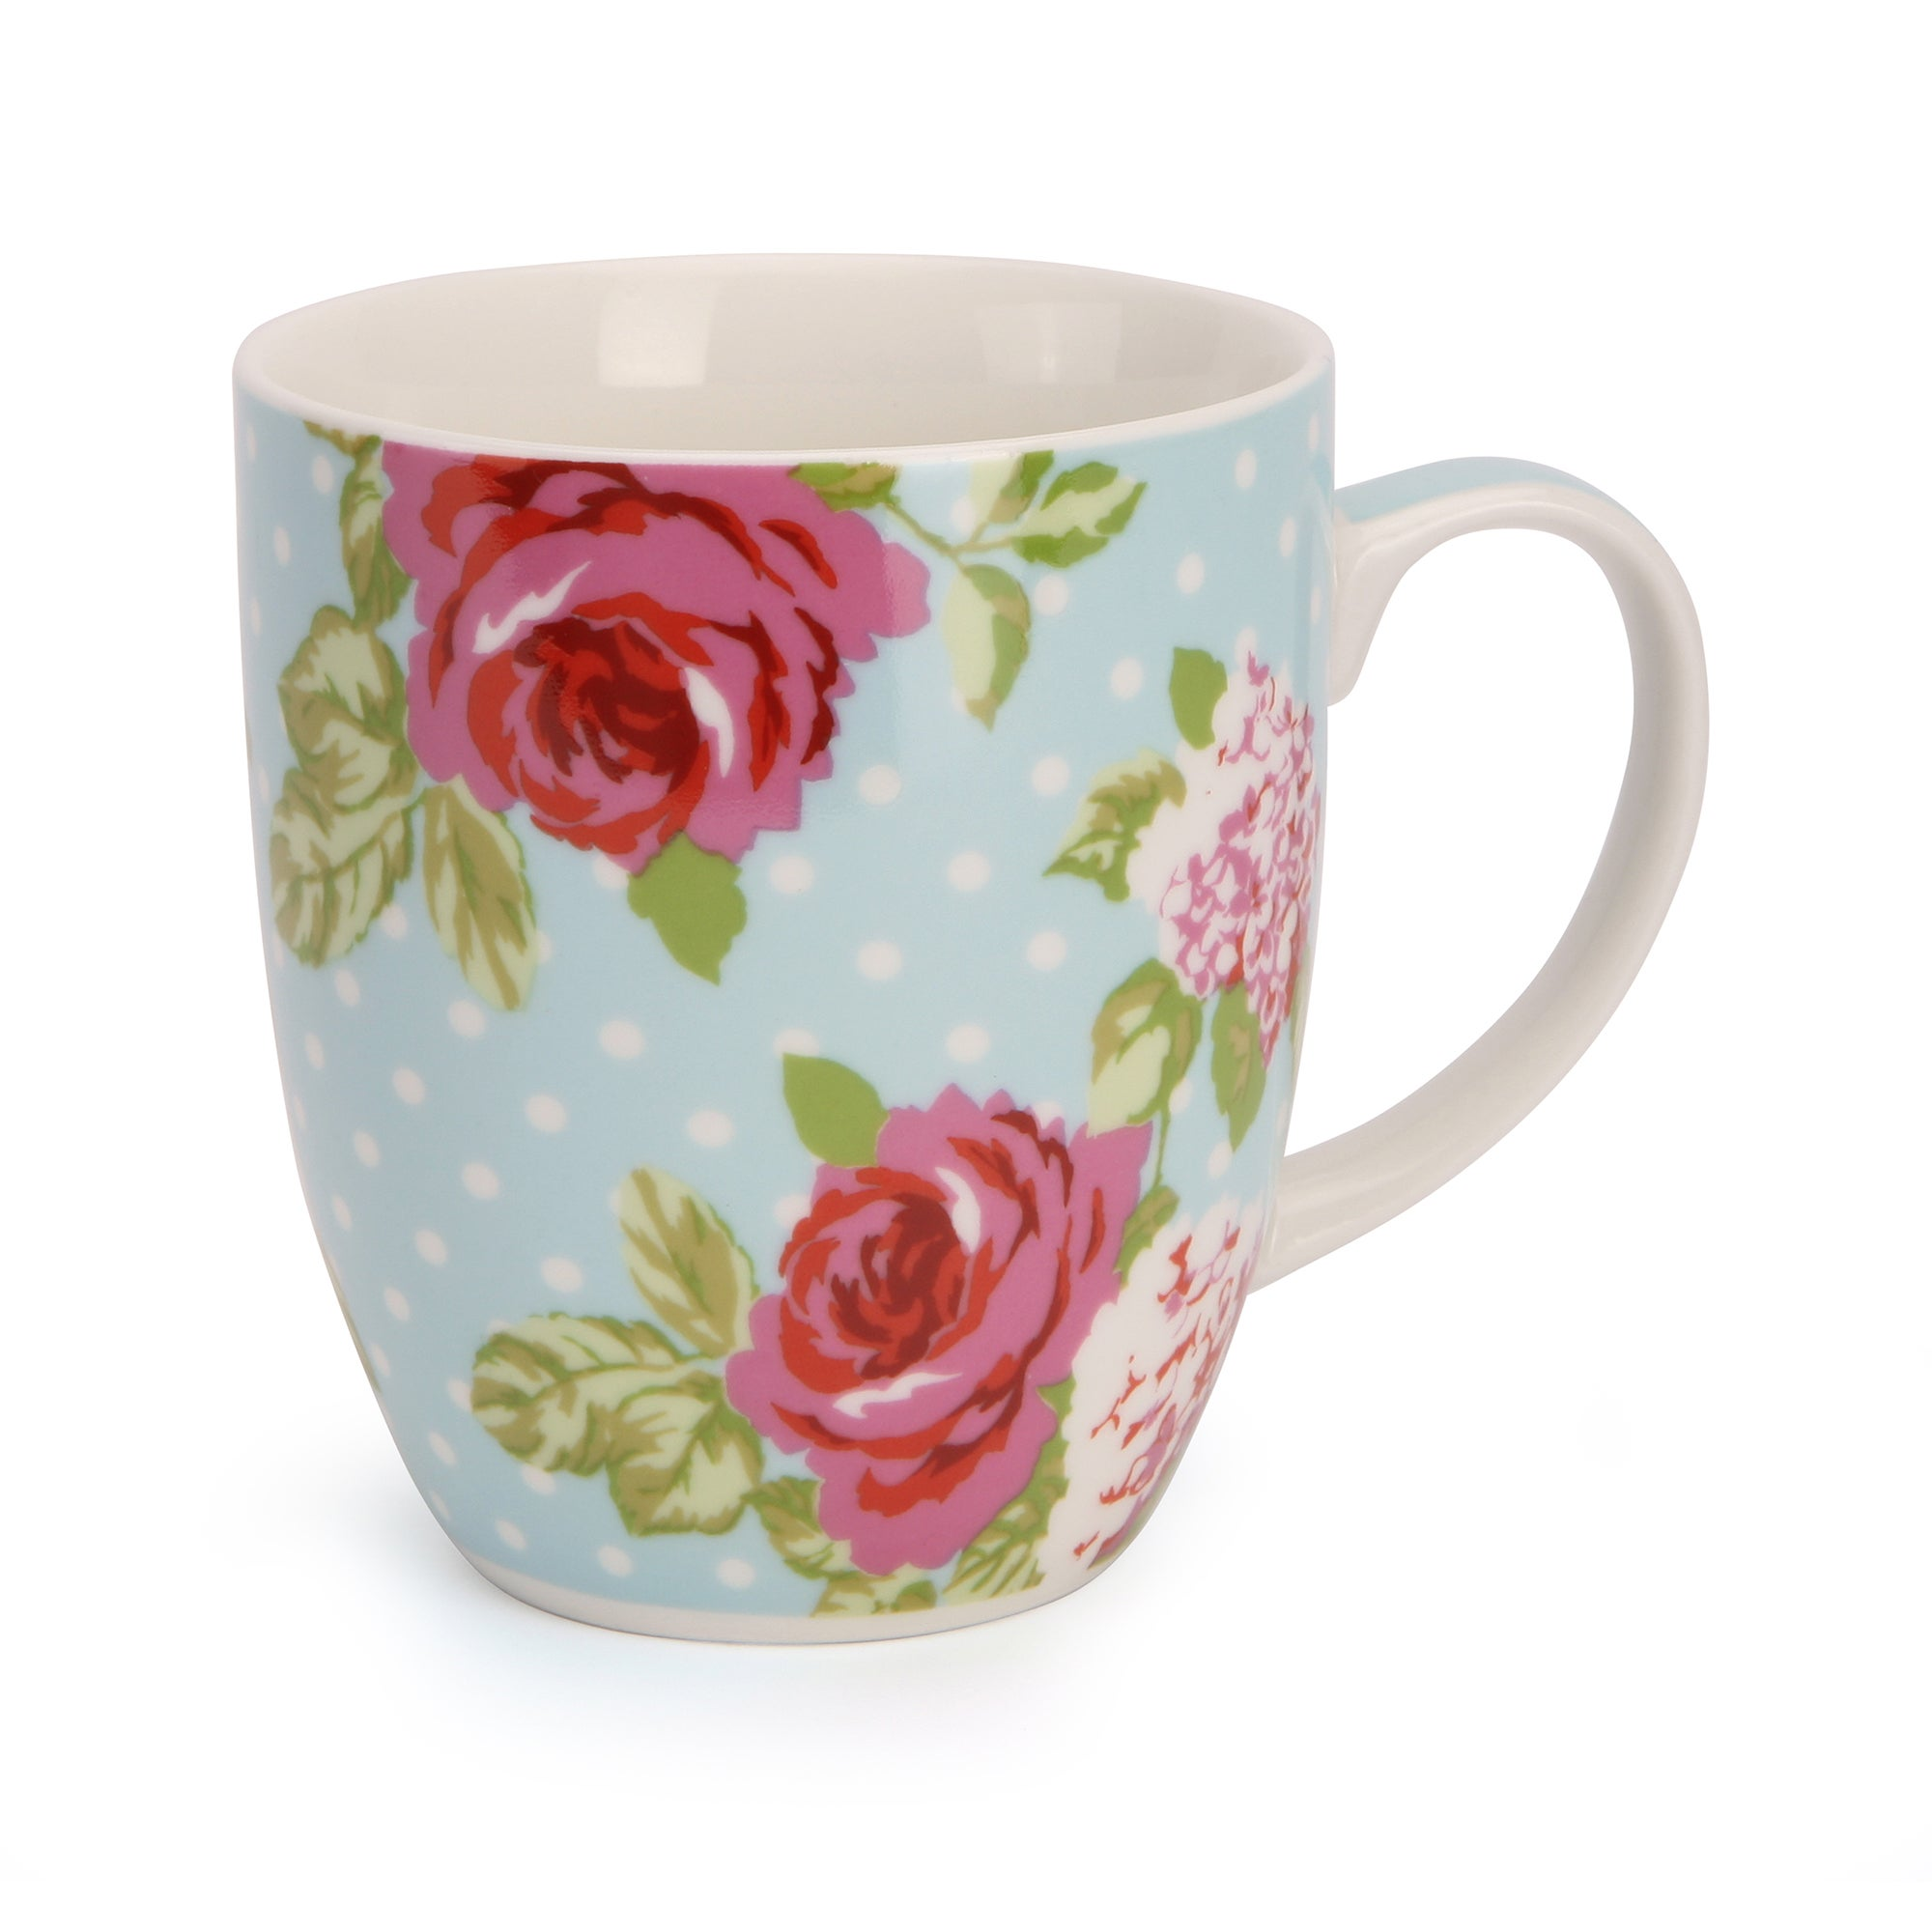 Rose and Ellis Clarendon Collection Mug